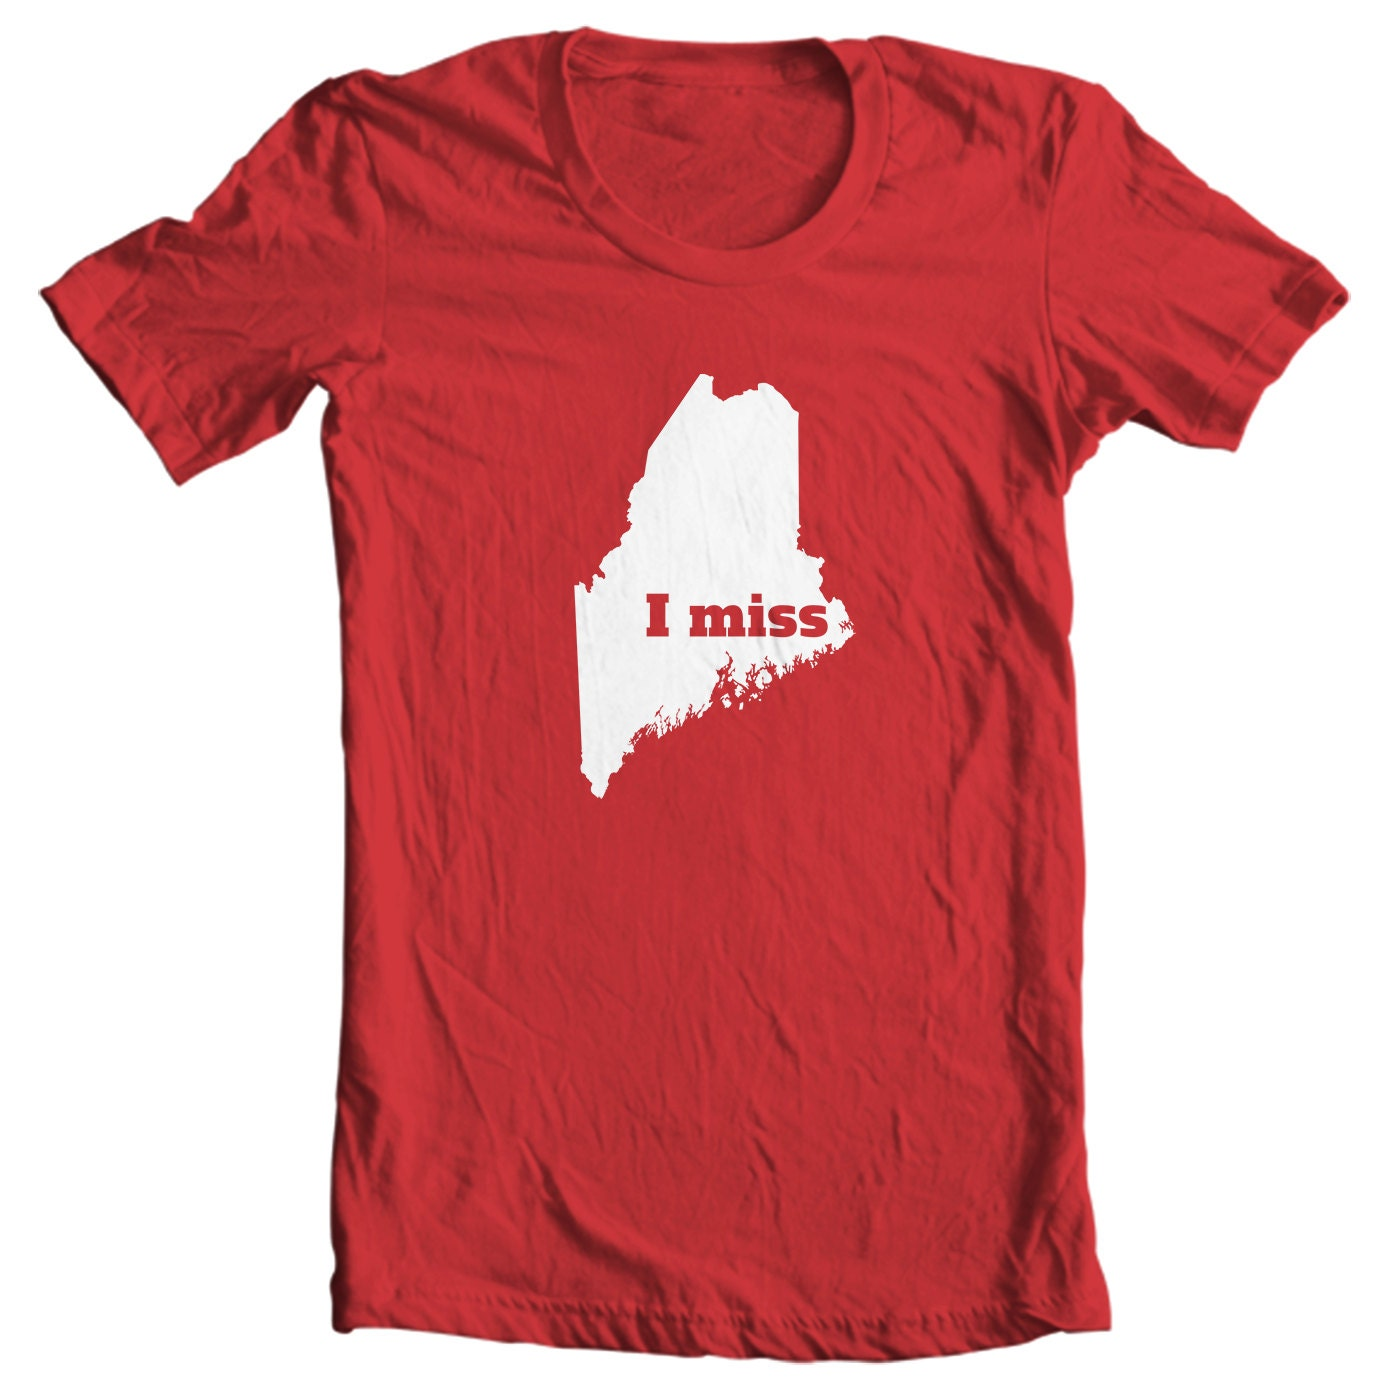 Maine T-shirt - I Miss Maine - My State Maine T-shirt